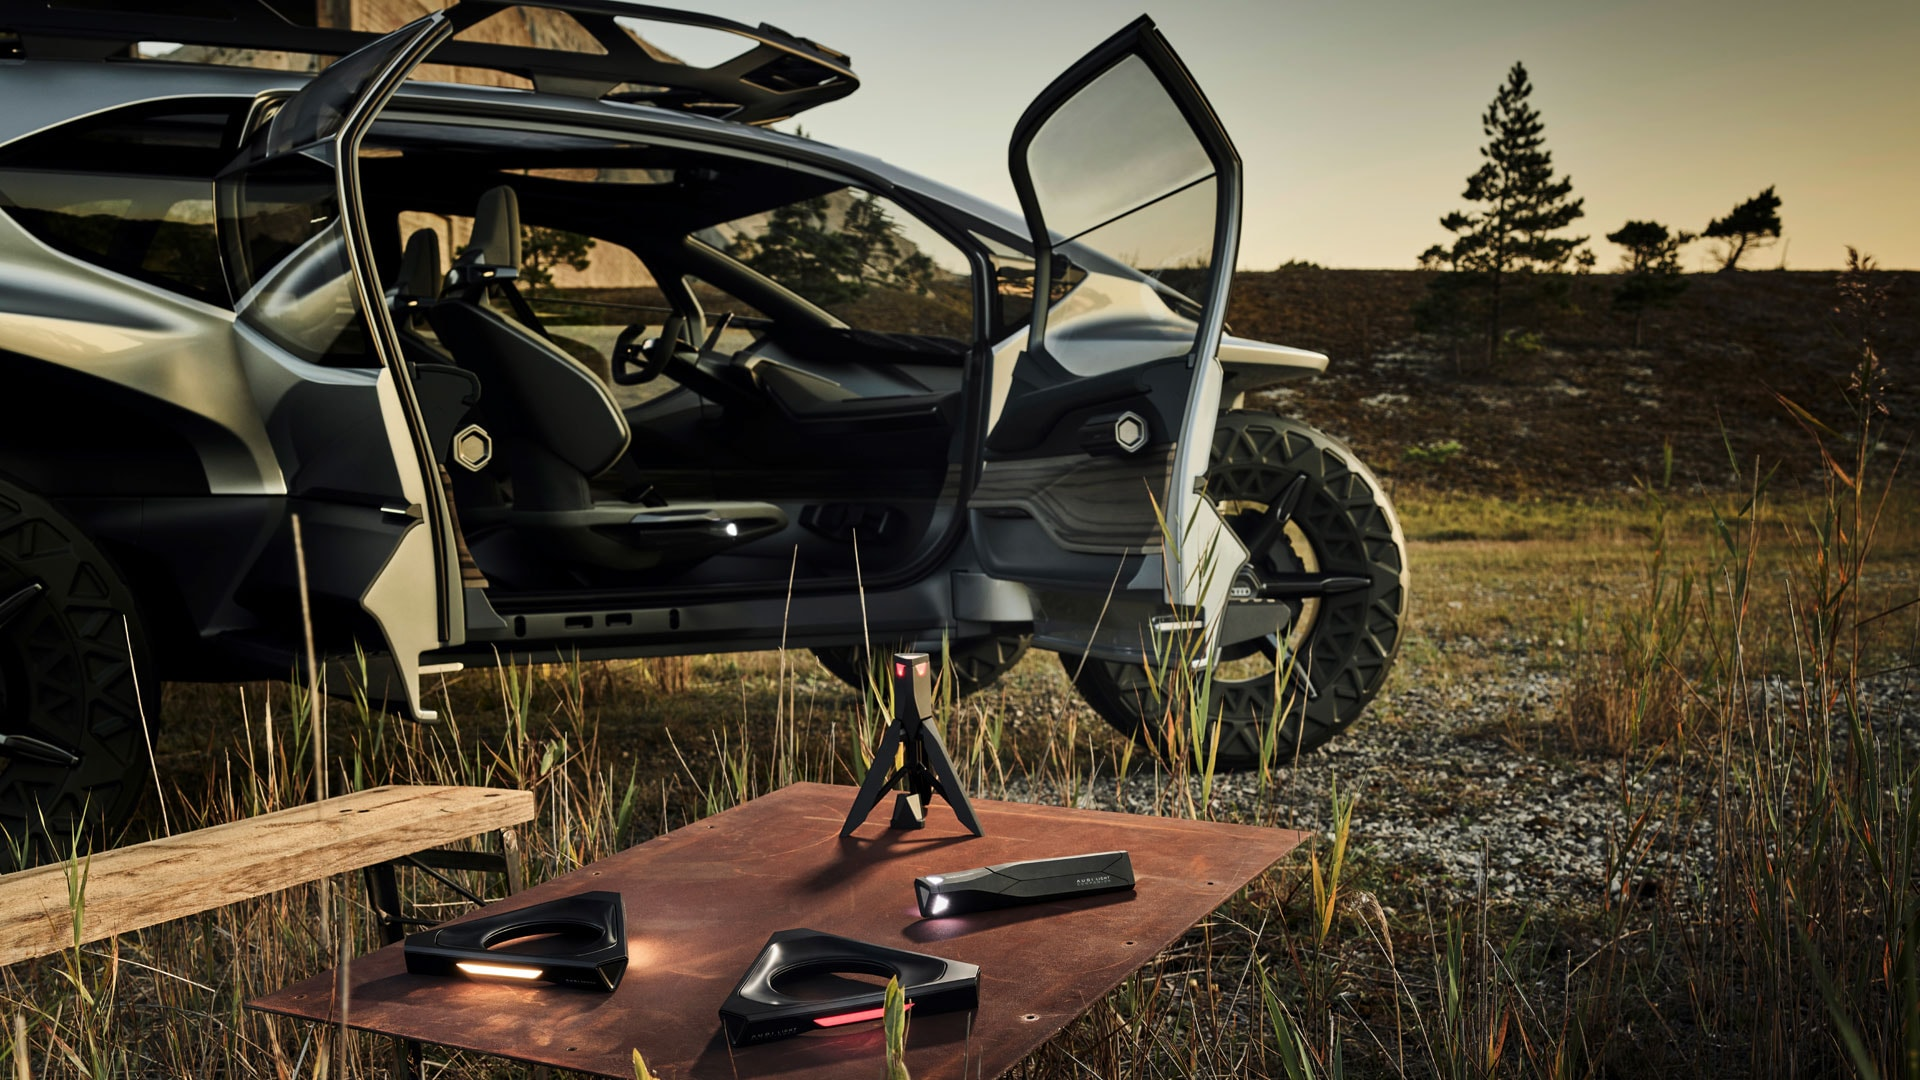 Gadgets, inklusive Light Companion, des Concept Cars Audi AI:TRAIL